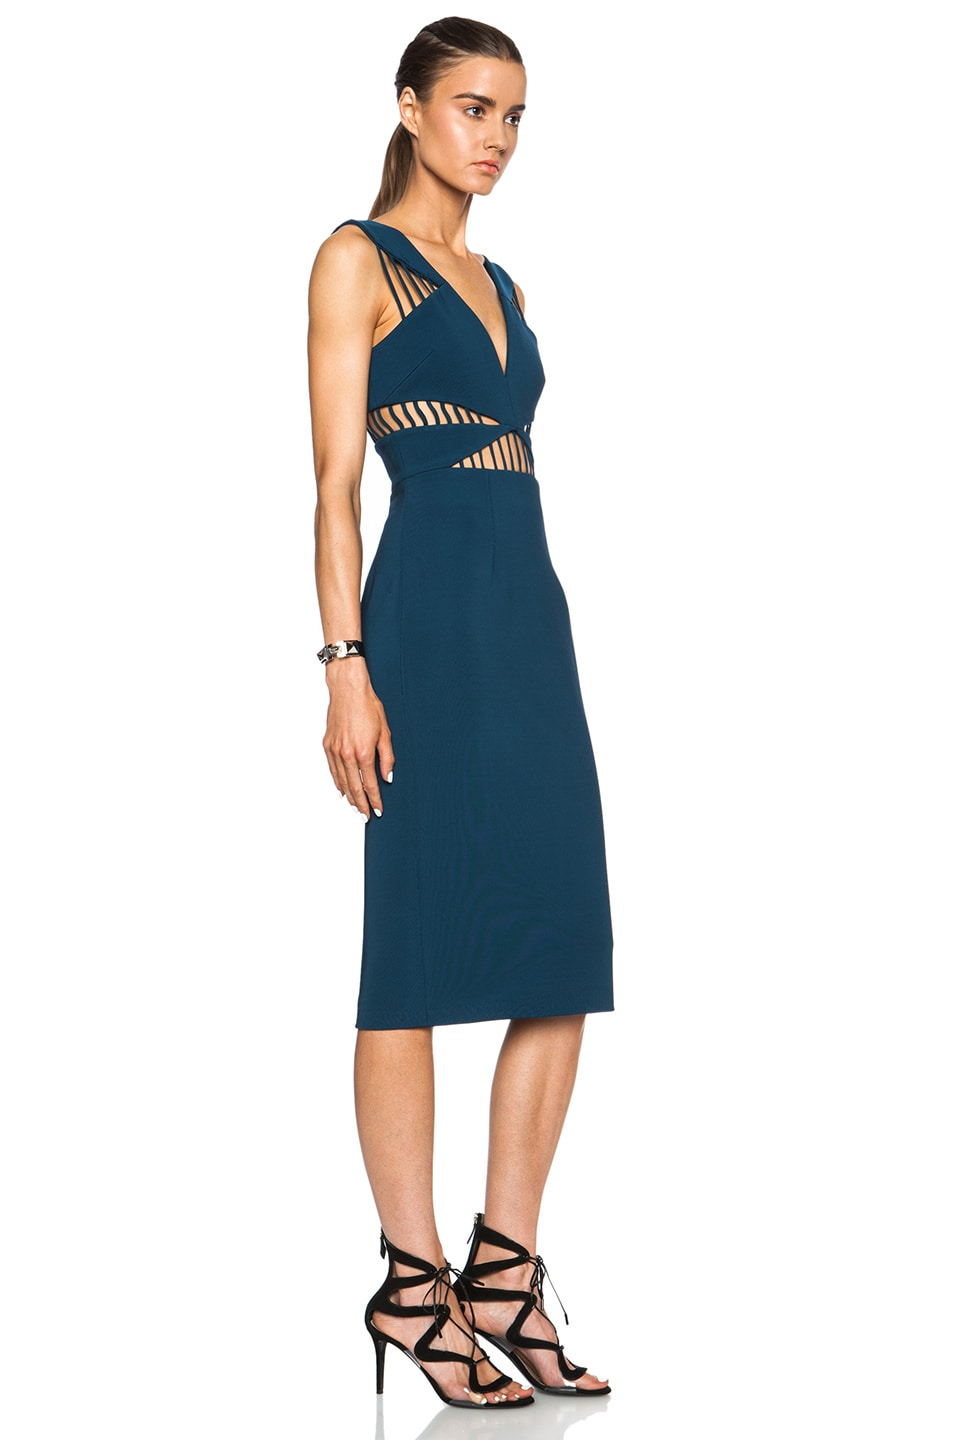 Image 3 of Cushnie et Ochs FORWARD EXCLUSIVE Power Viscose-Blend Dress in Blue Nile